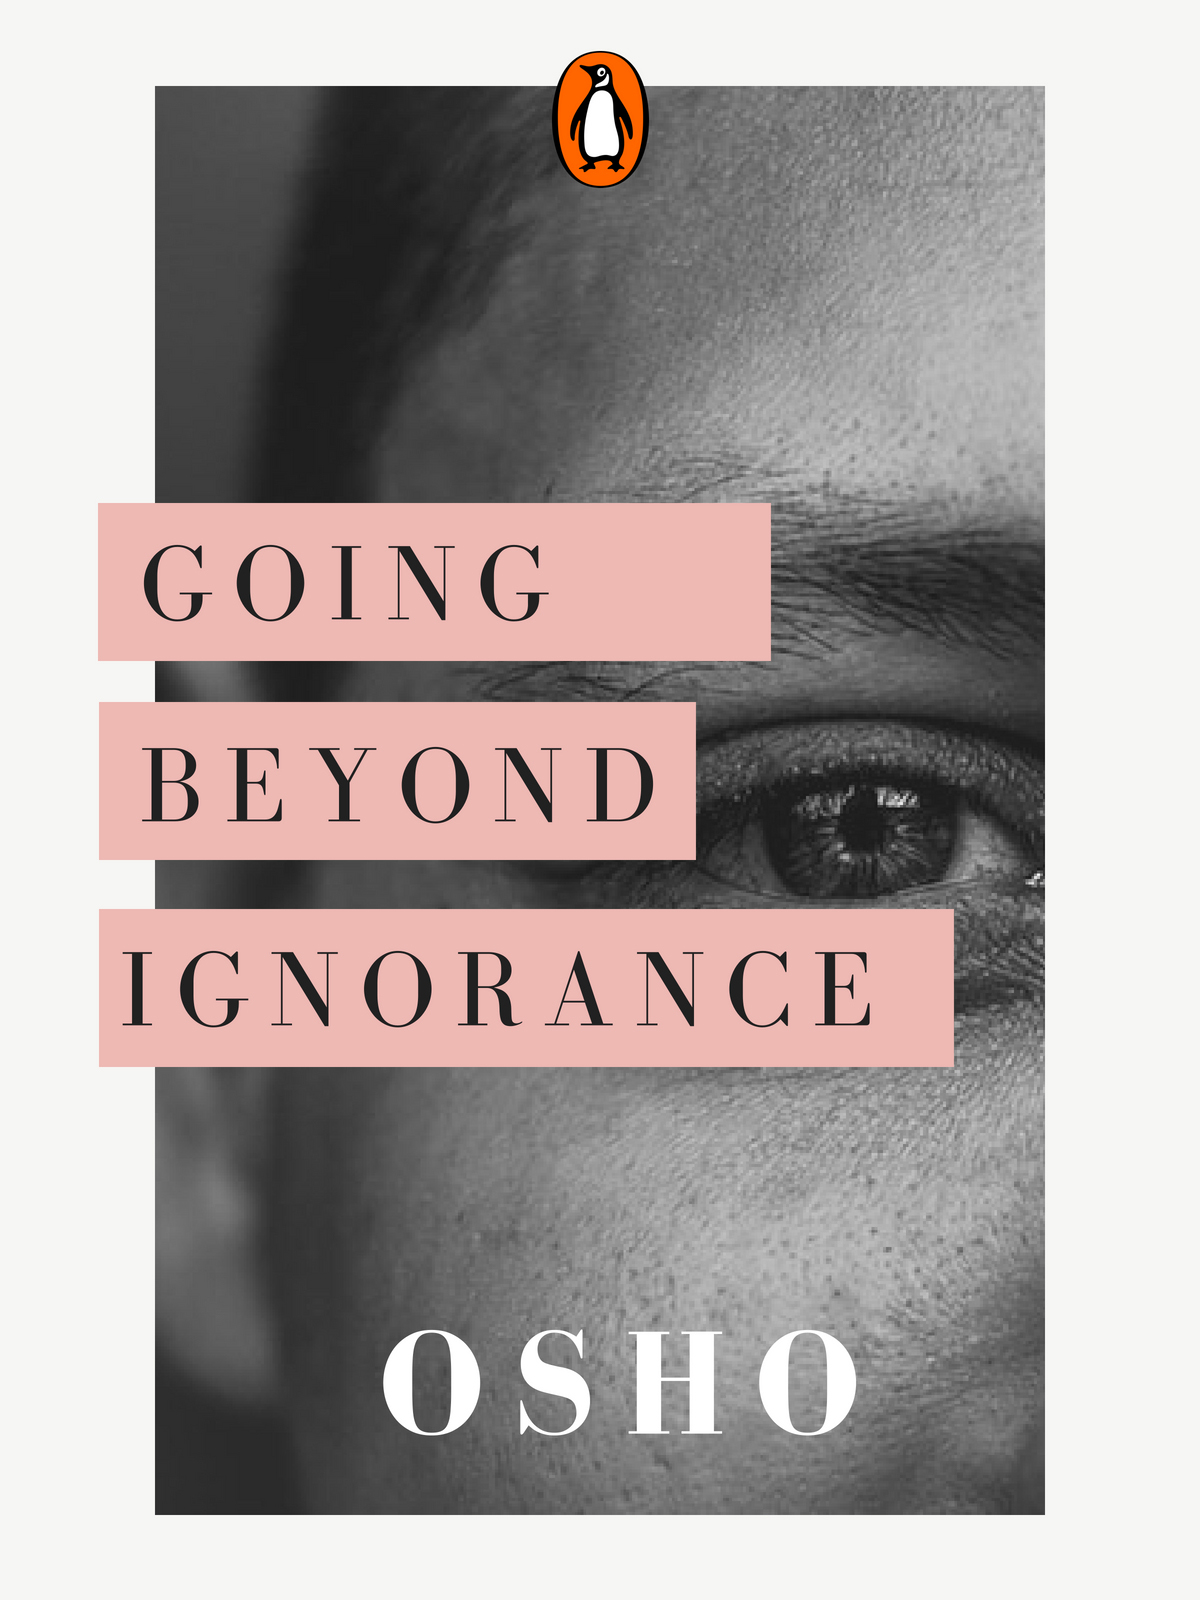 Going Beyond Ignorance